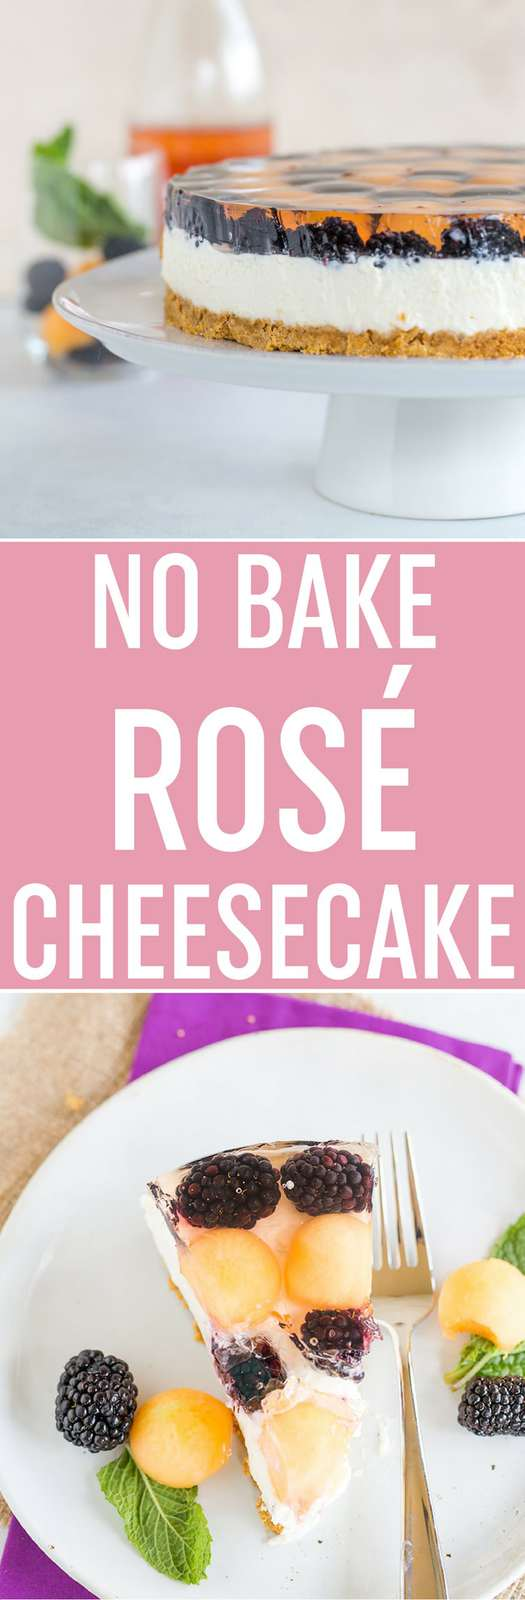 No Bake Rosé Cheesecake - A graham cracker crust with a no bake, rosé-infused cheesecake filling, topped with a cantaloupe and blackberry rosé gelatin. It's easy, summery, and a total show-stopper; a must make it for National Cheesecake Day! Sponsored by @spreadphilly.